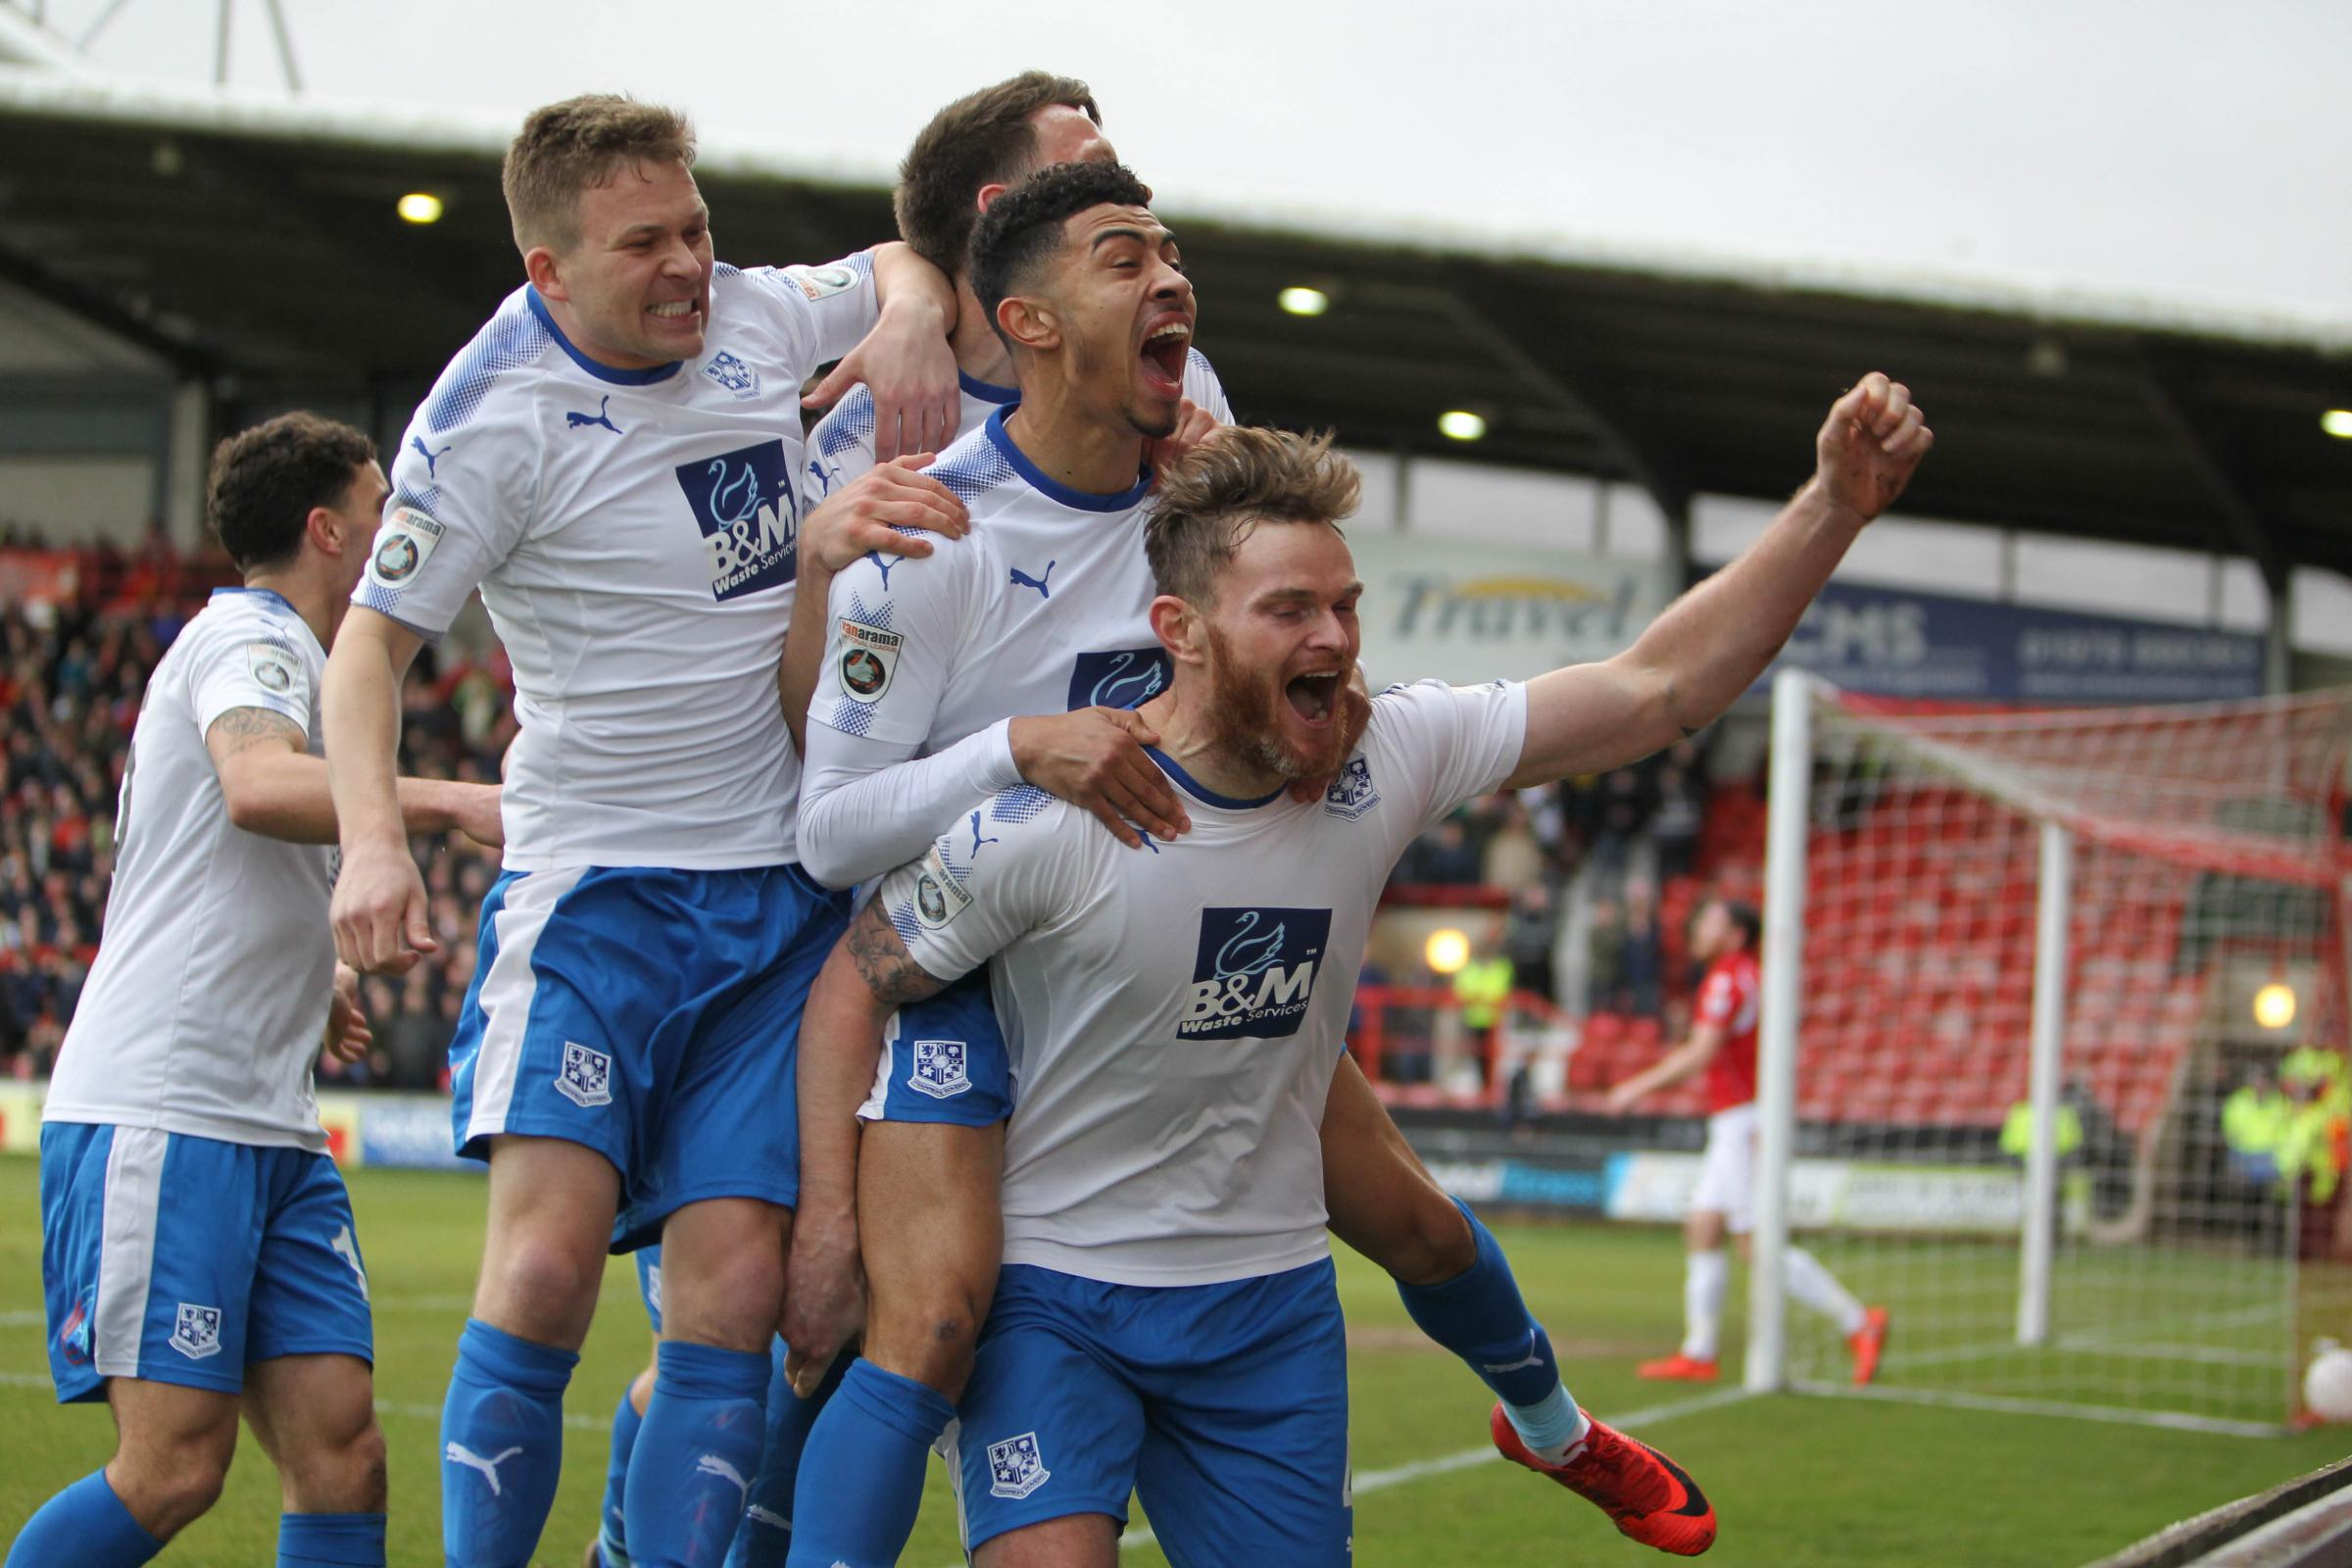 Richie Sutton celebrates scoring on Saturday. Picture: Richard Ault